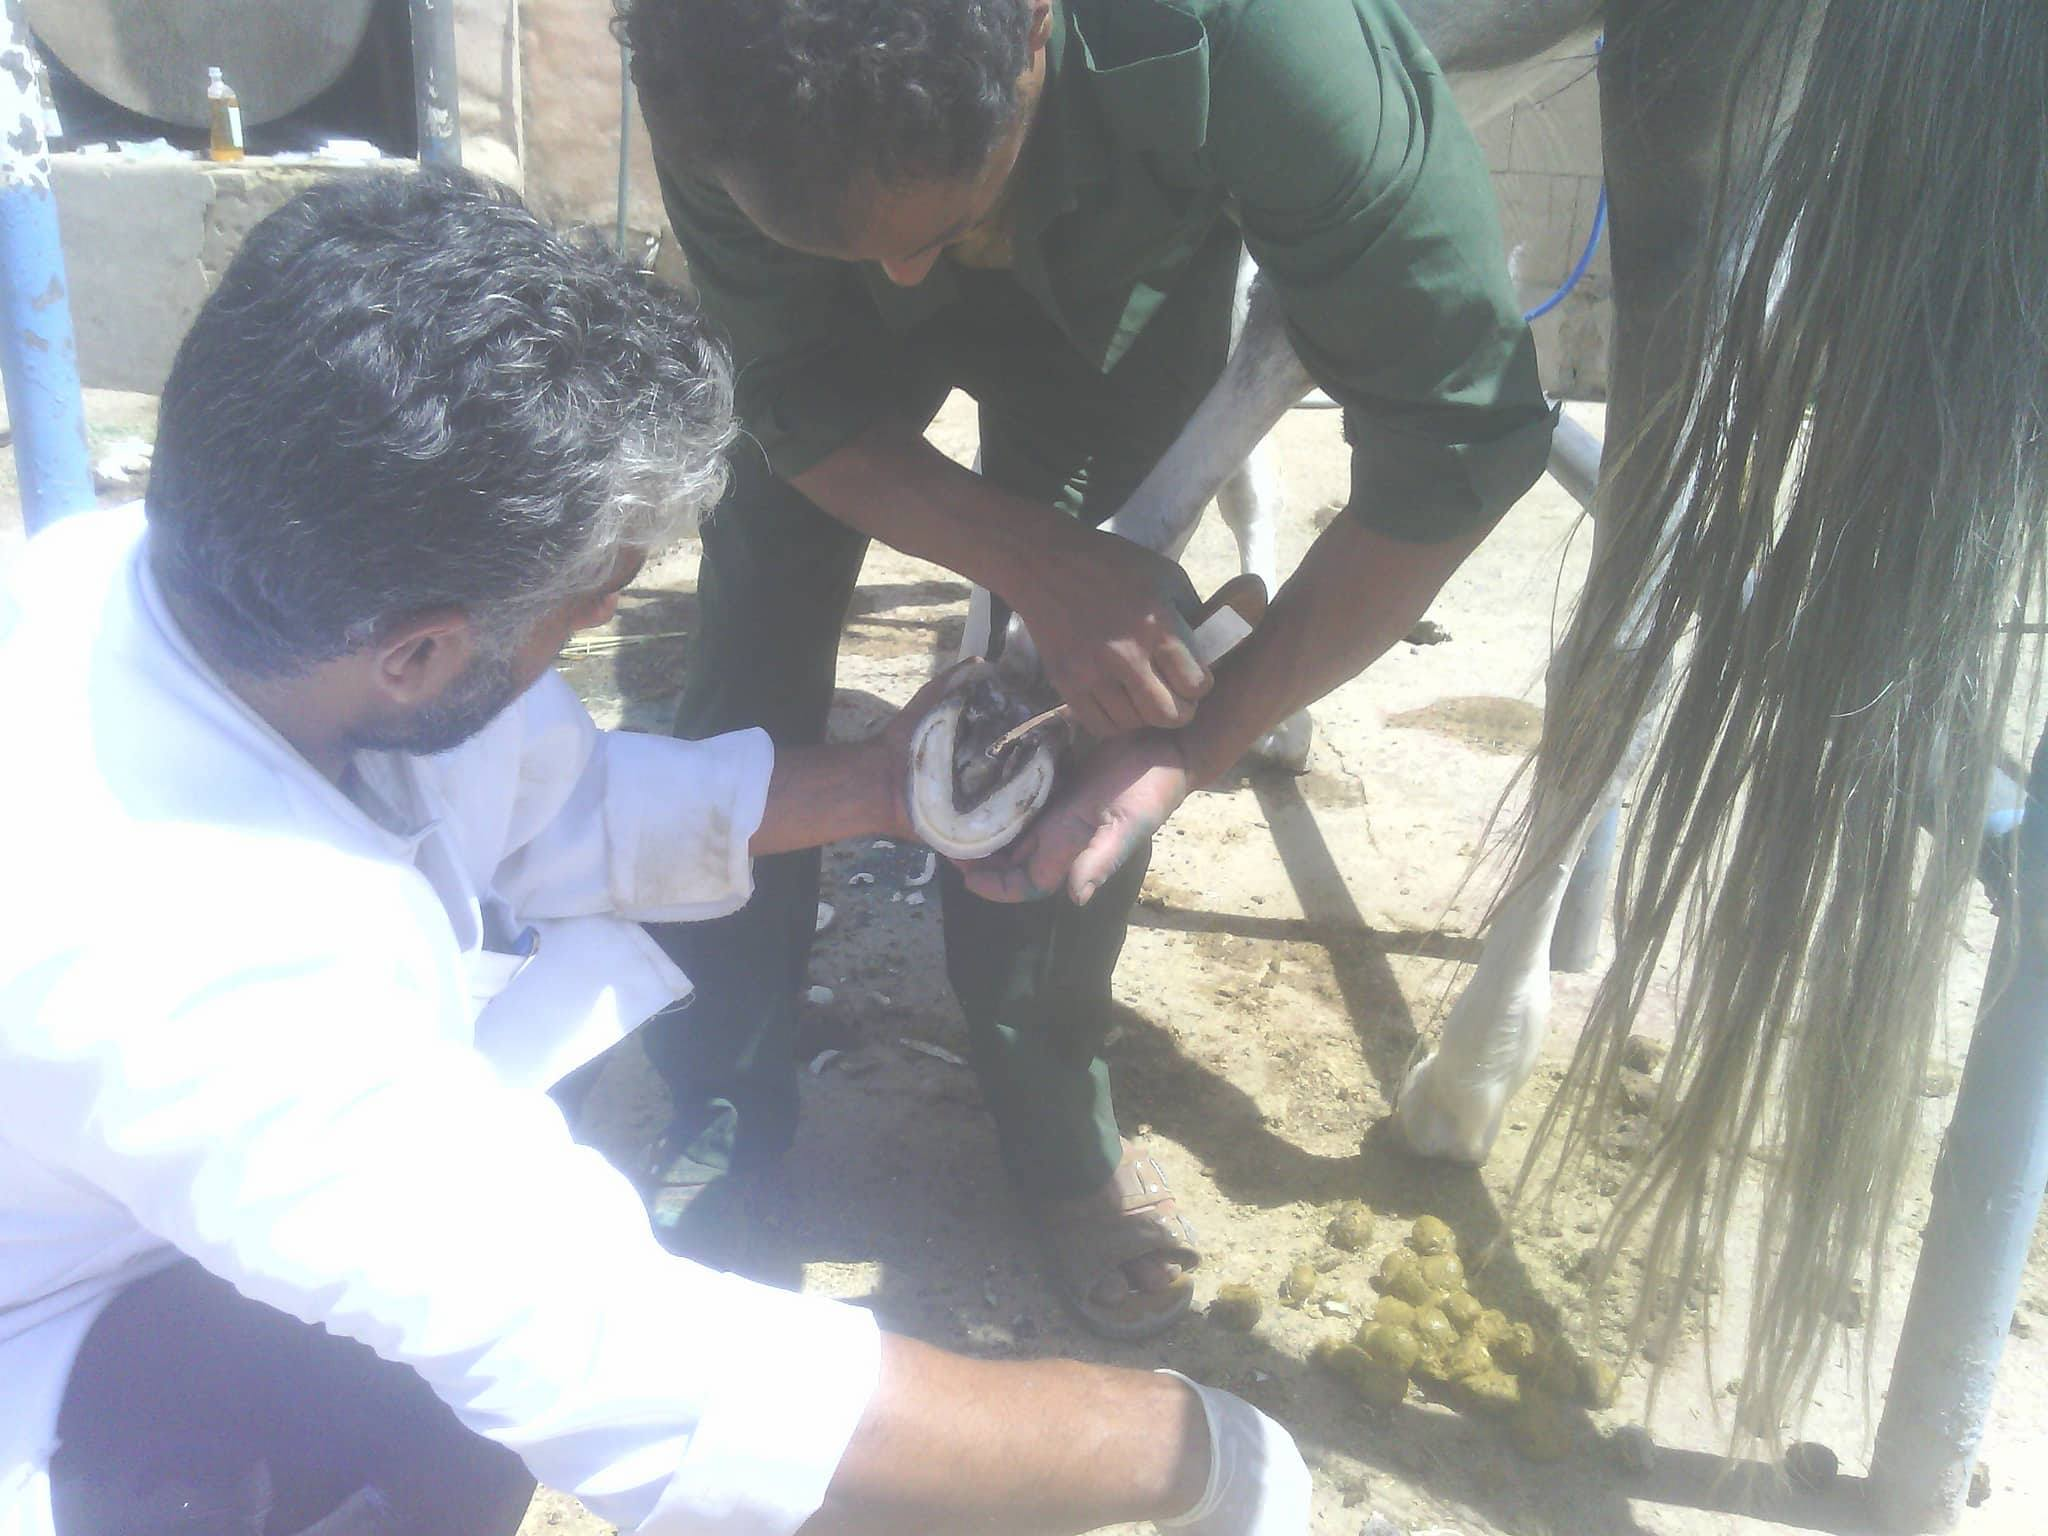 arabian withmohammed  tawvil and dr Moshir scraping away the bacteria 17 oct 2017 OWAP AR The Police Ac.Yemen.jpg